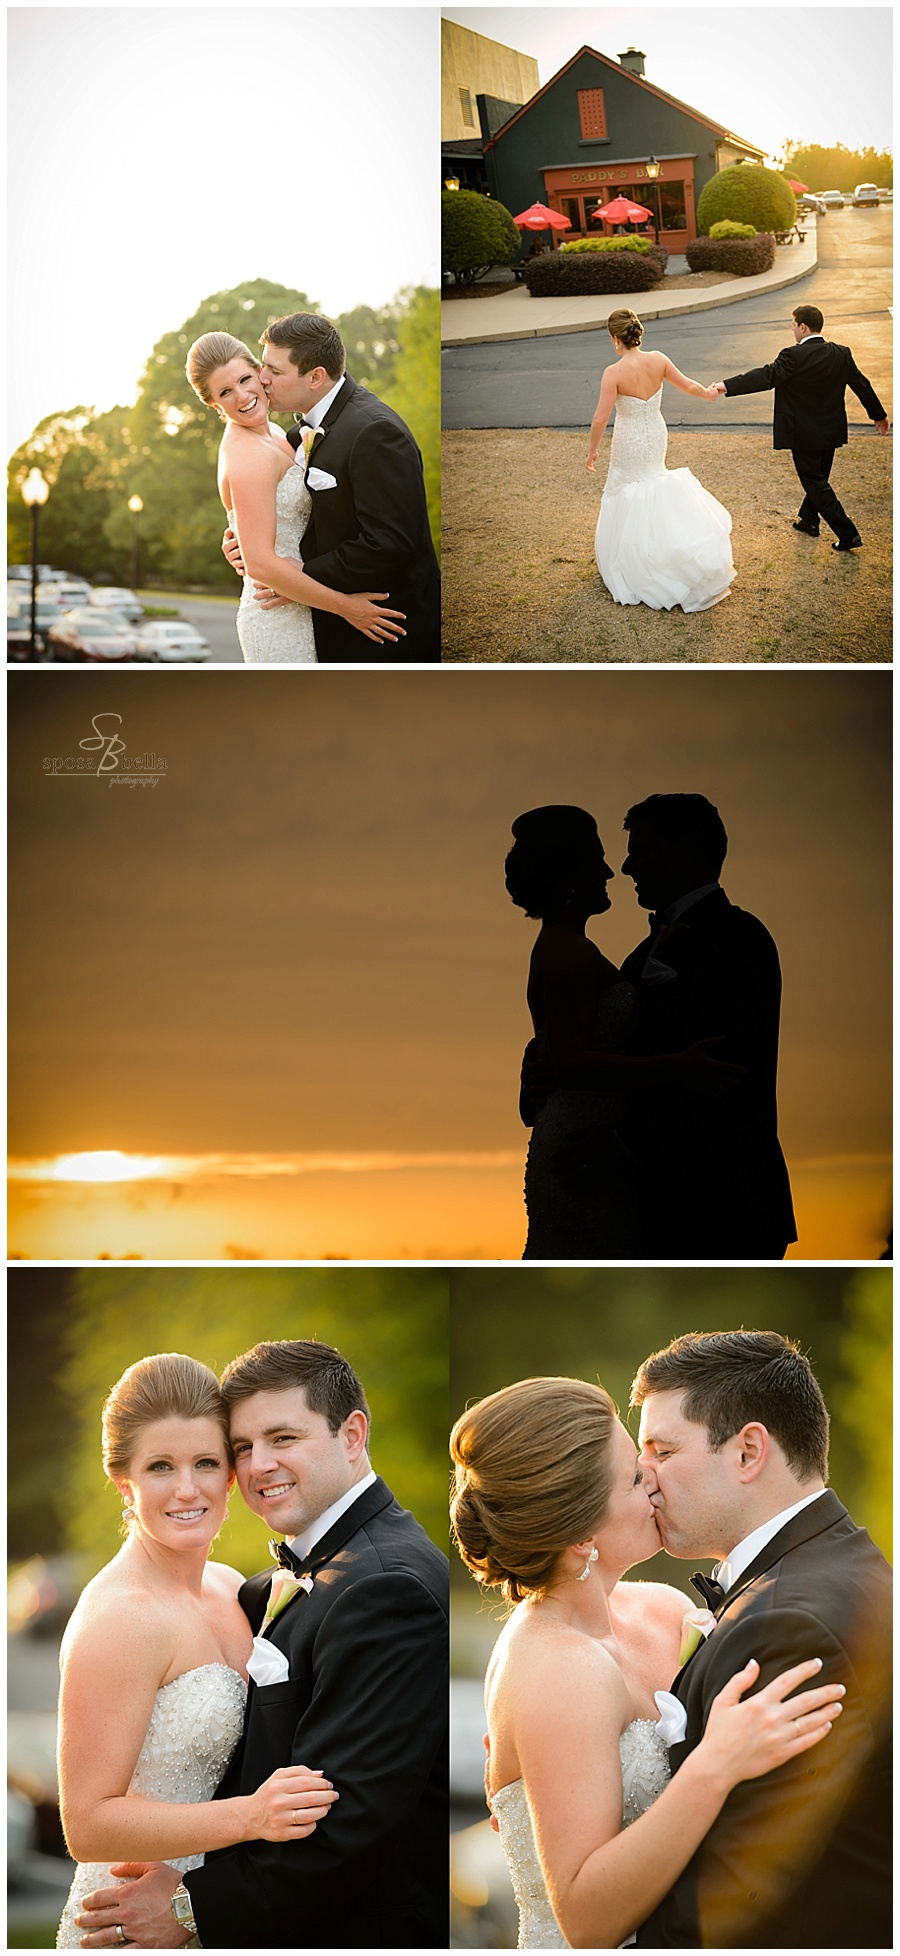 Sposa Bella Photography SC Wedding Photographer Of The Year Our Journal Page 4 Of 34